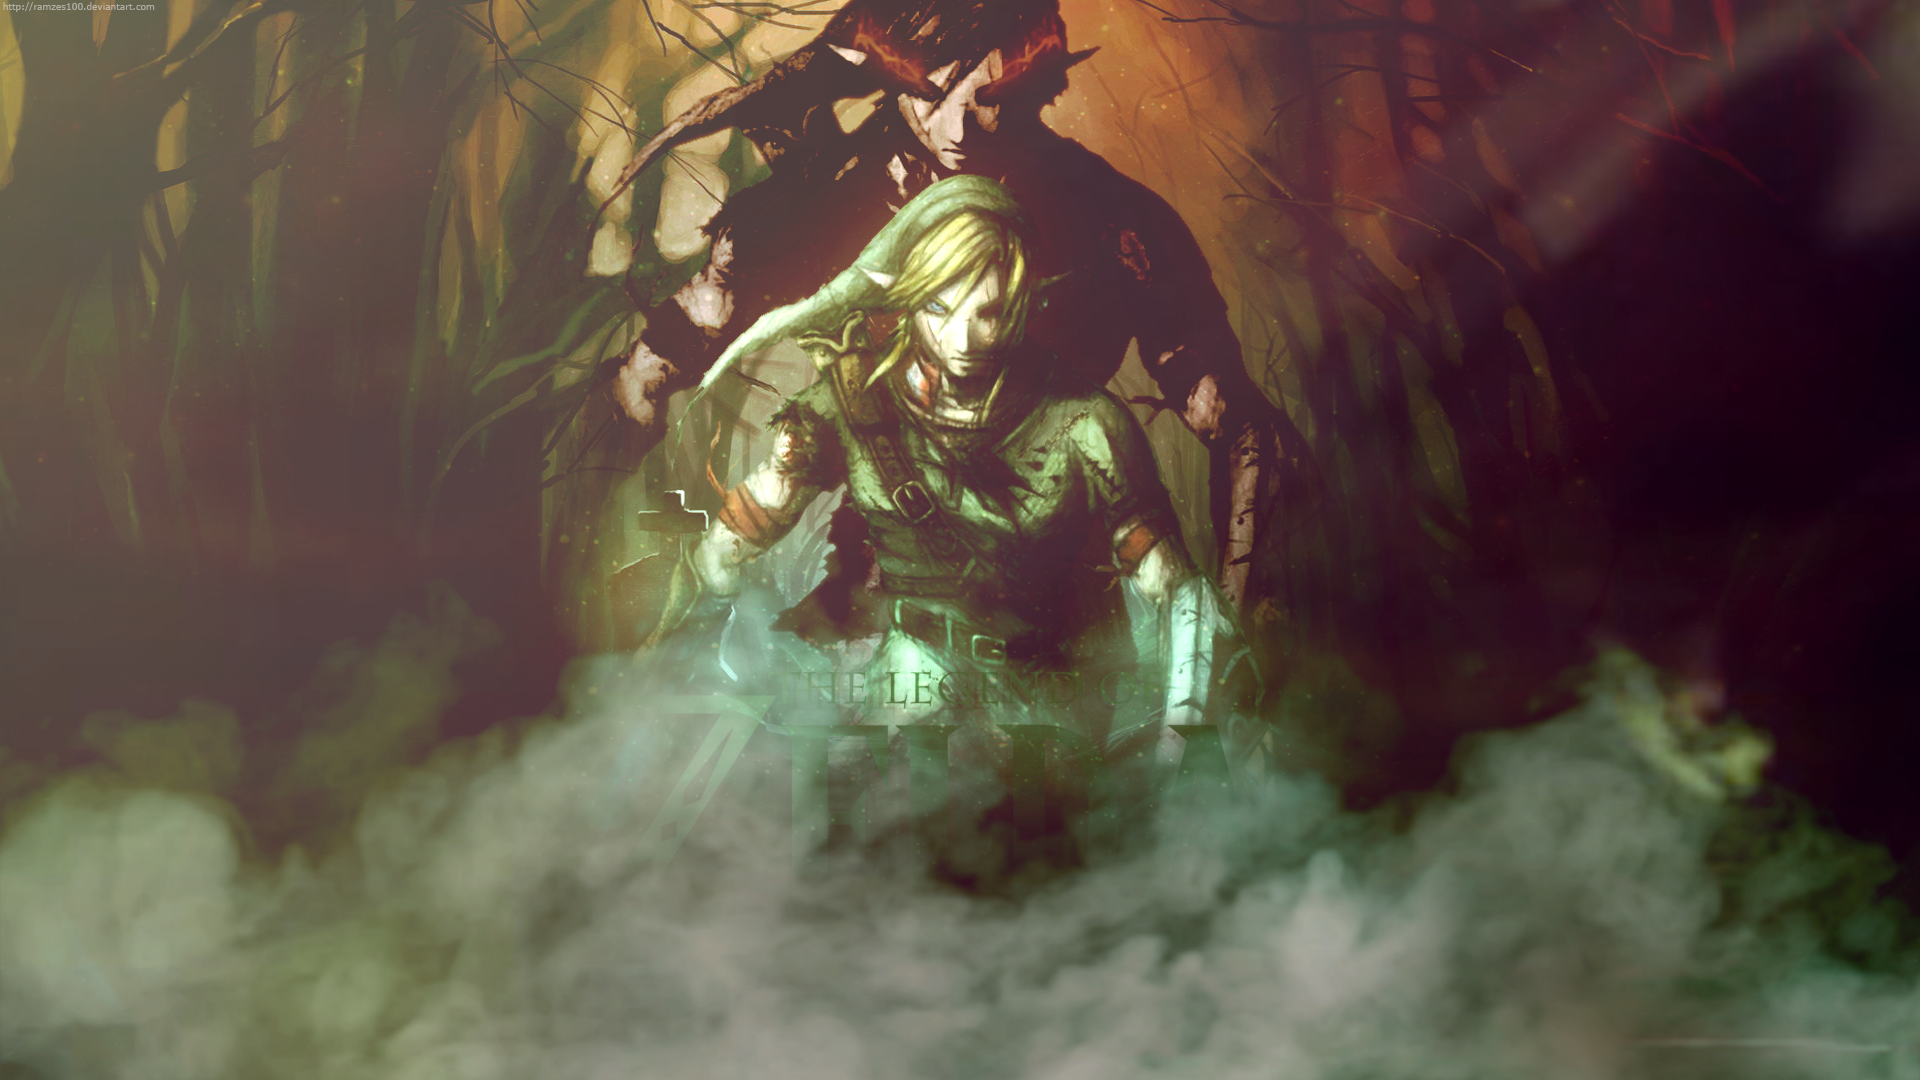 The Legend of Zelda Wallpaper by Ramzes100 on DeviantArt